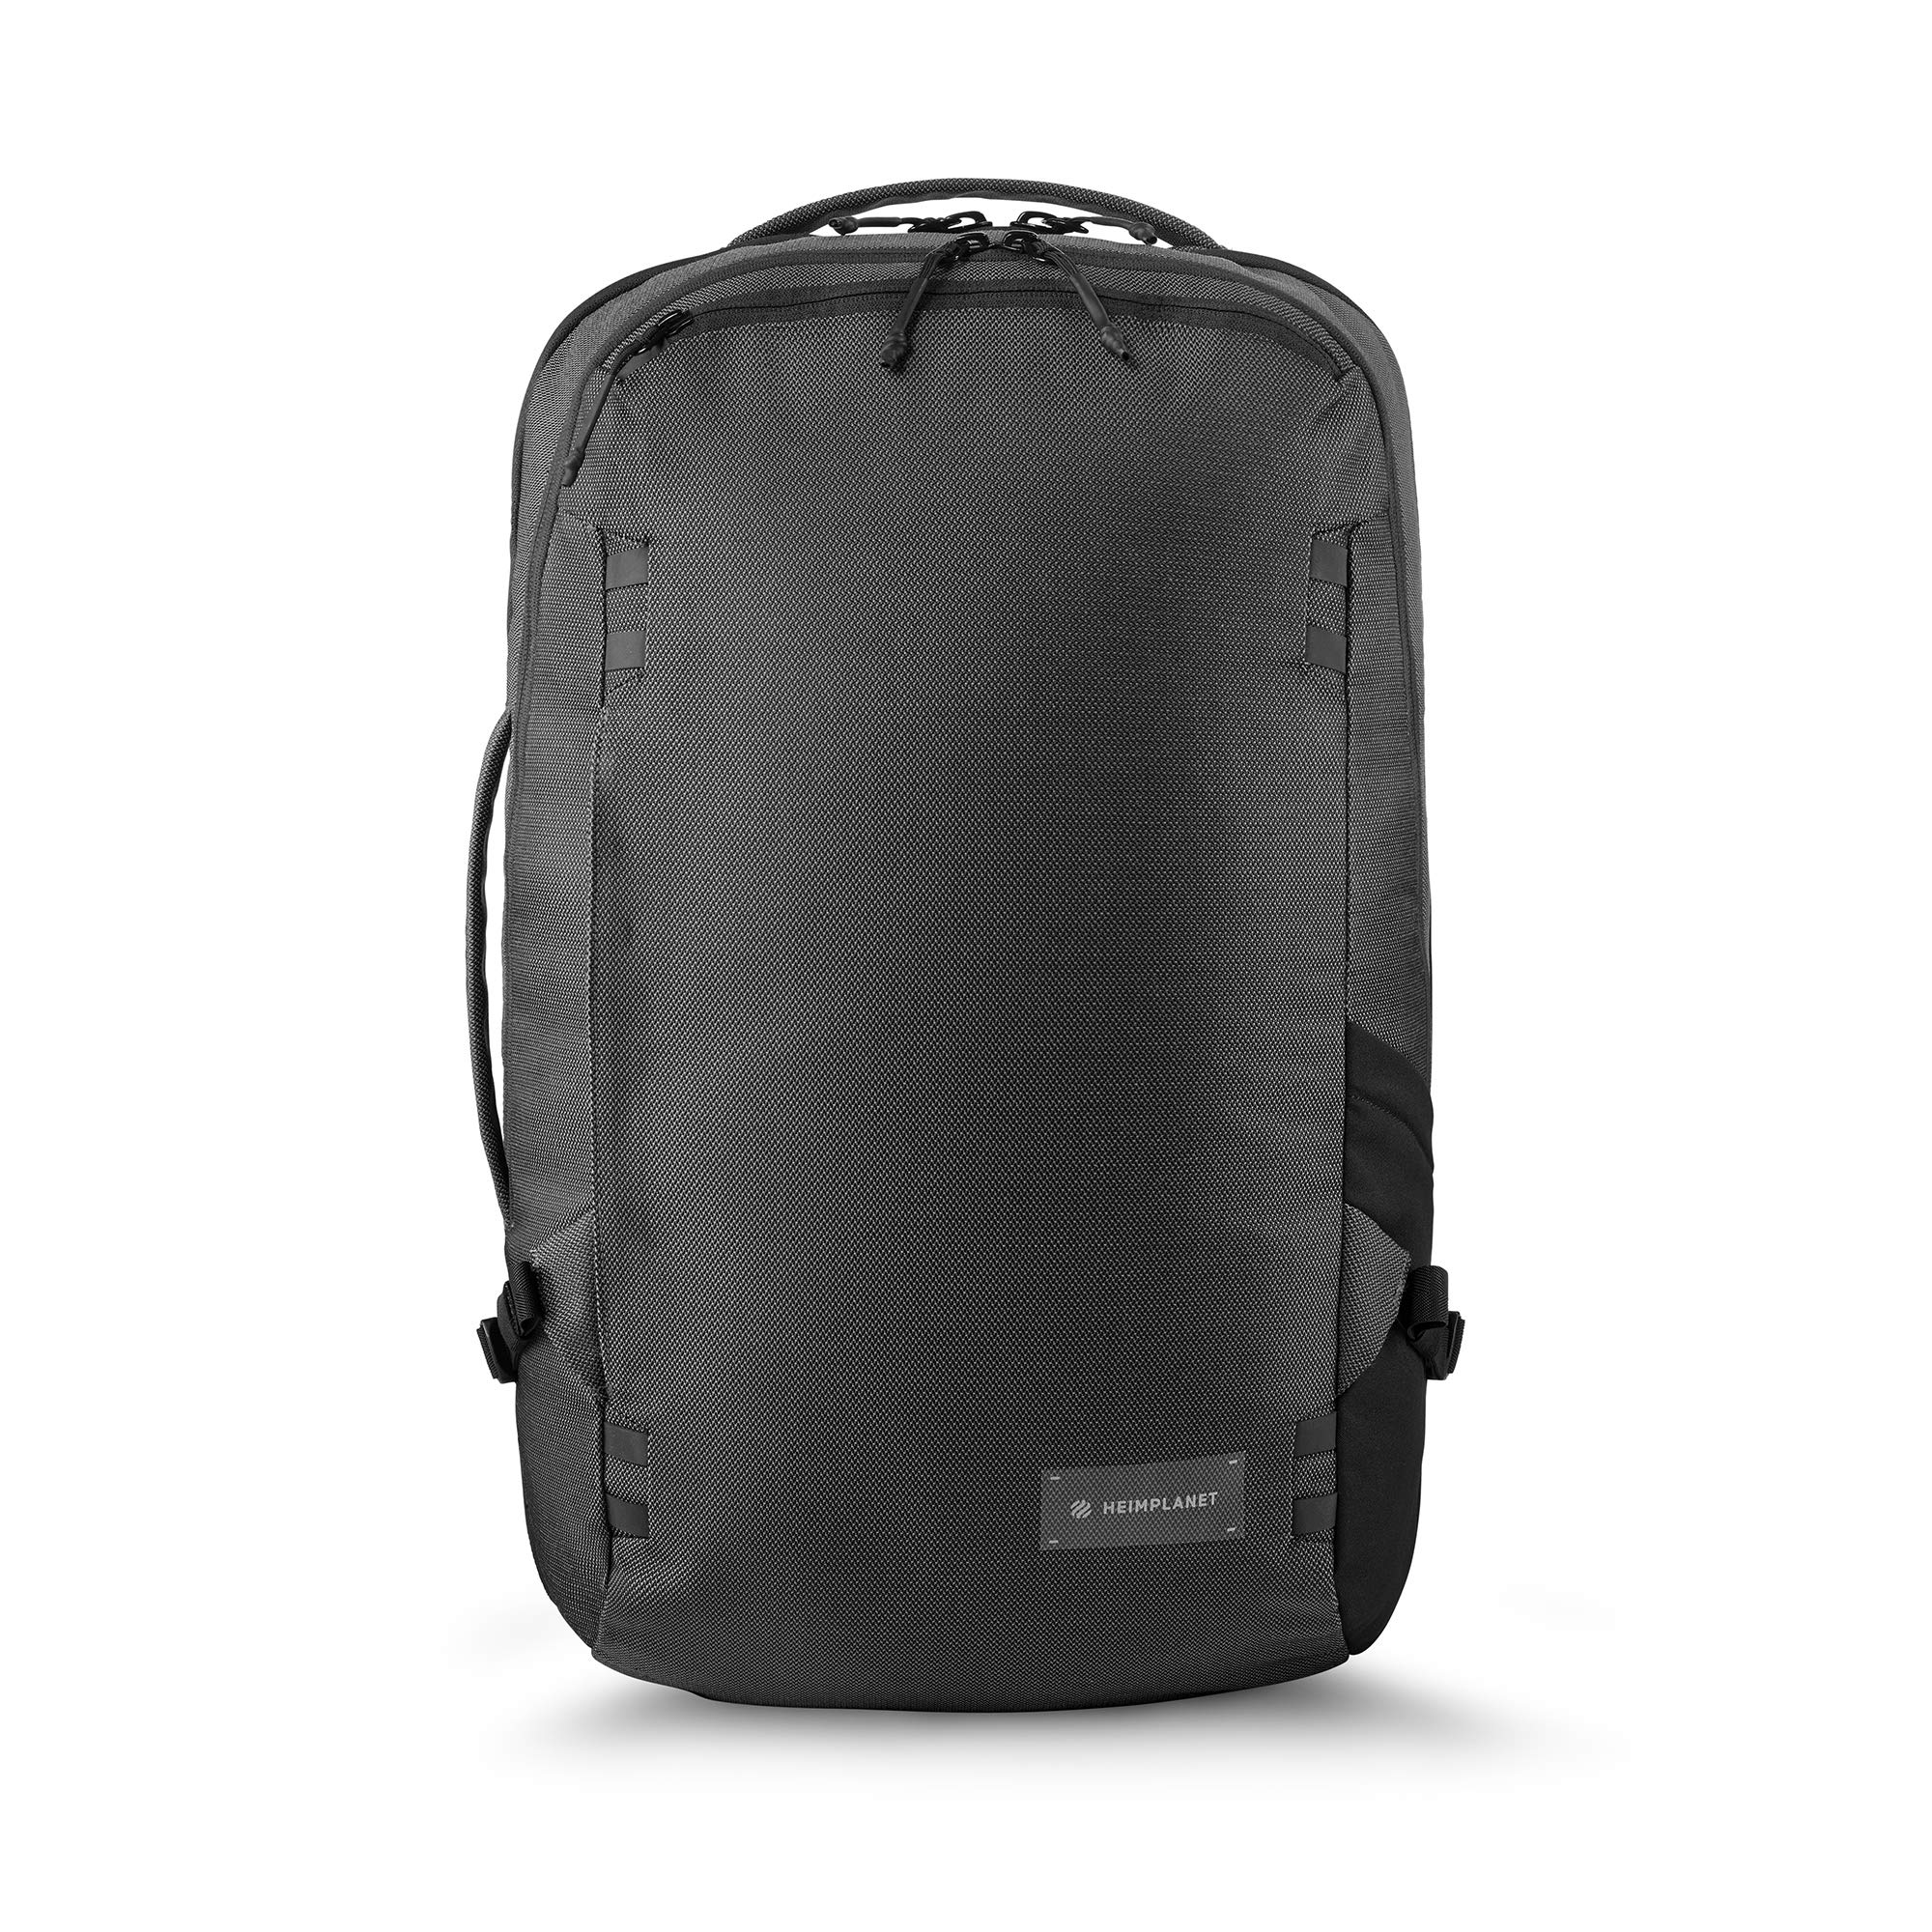 HEIMPLANET Original | Transit Line TRAVEL PACK | 34l Backpack waterproof backpack | Incl. Laptop Compartment & Clamshell Opening